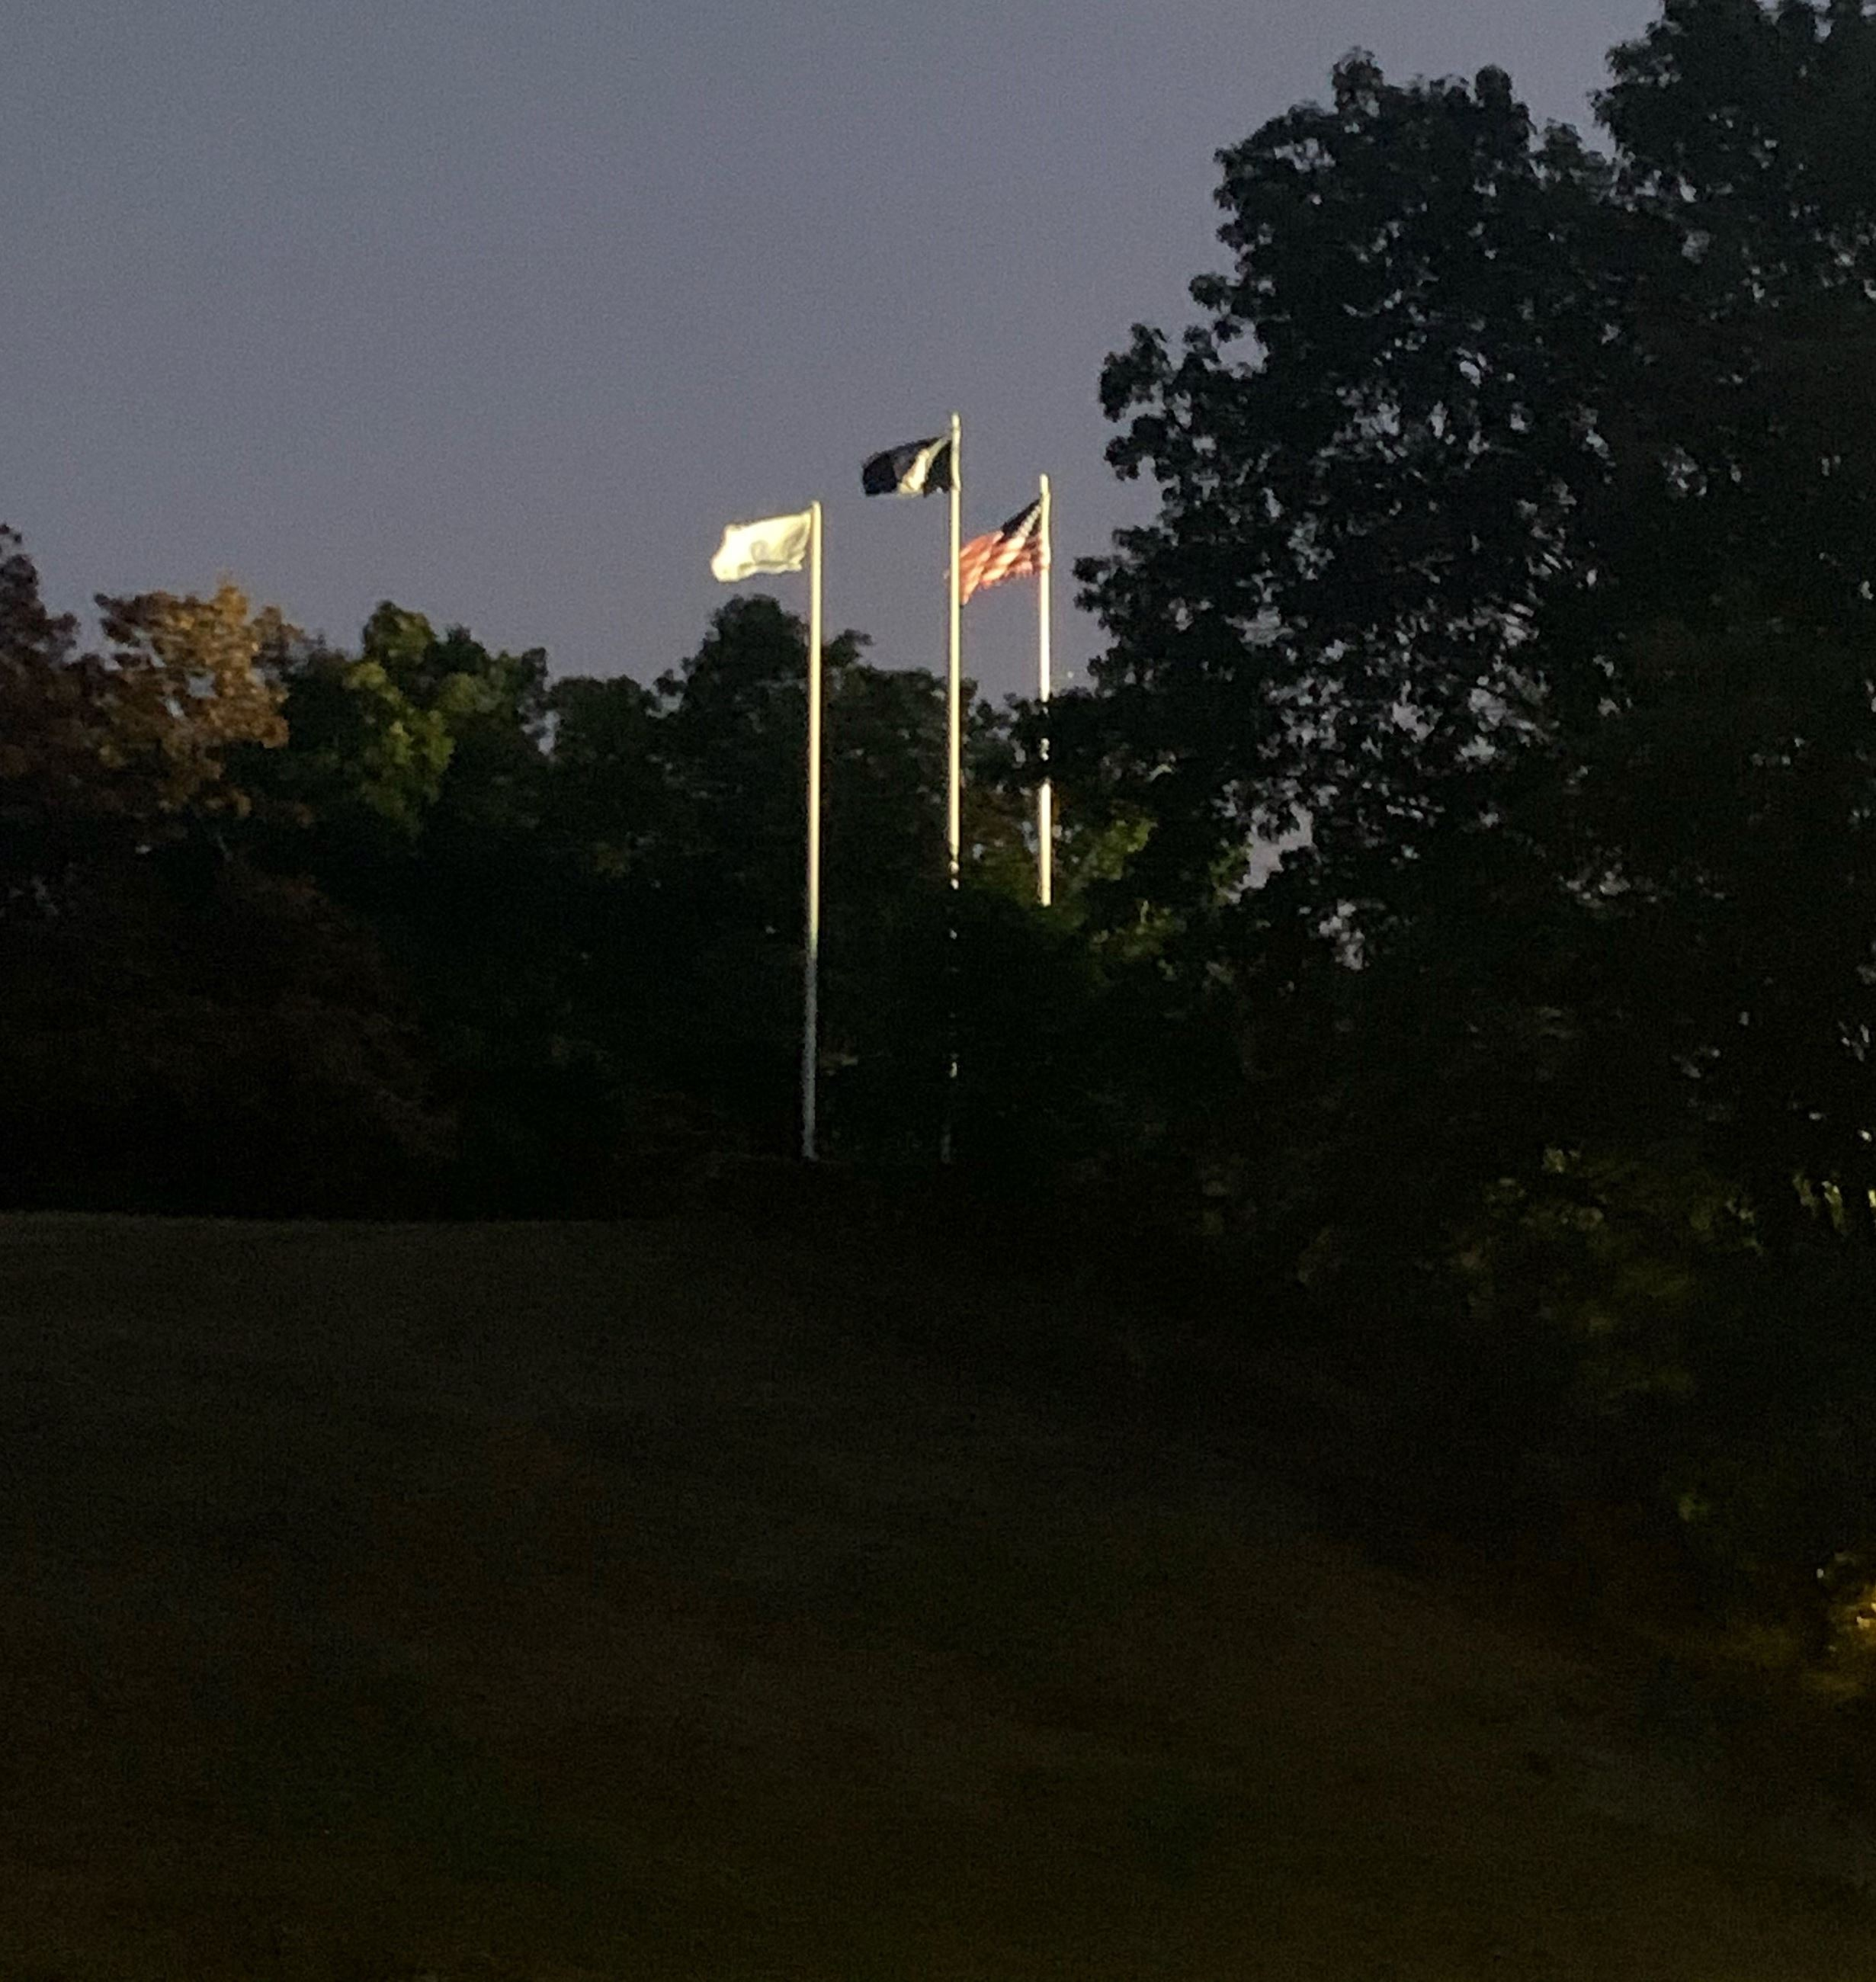 Flags at Fellsmere Pond